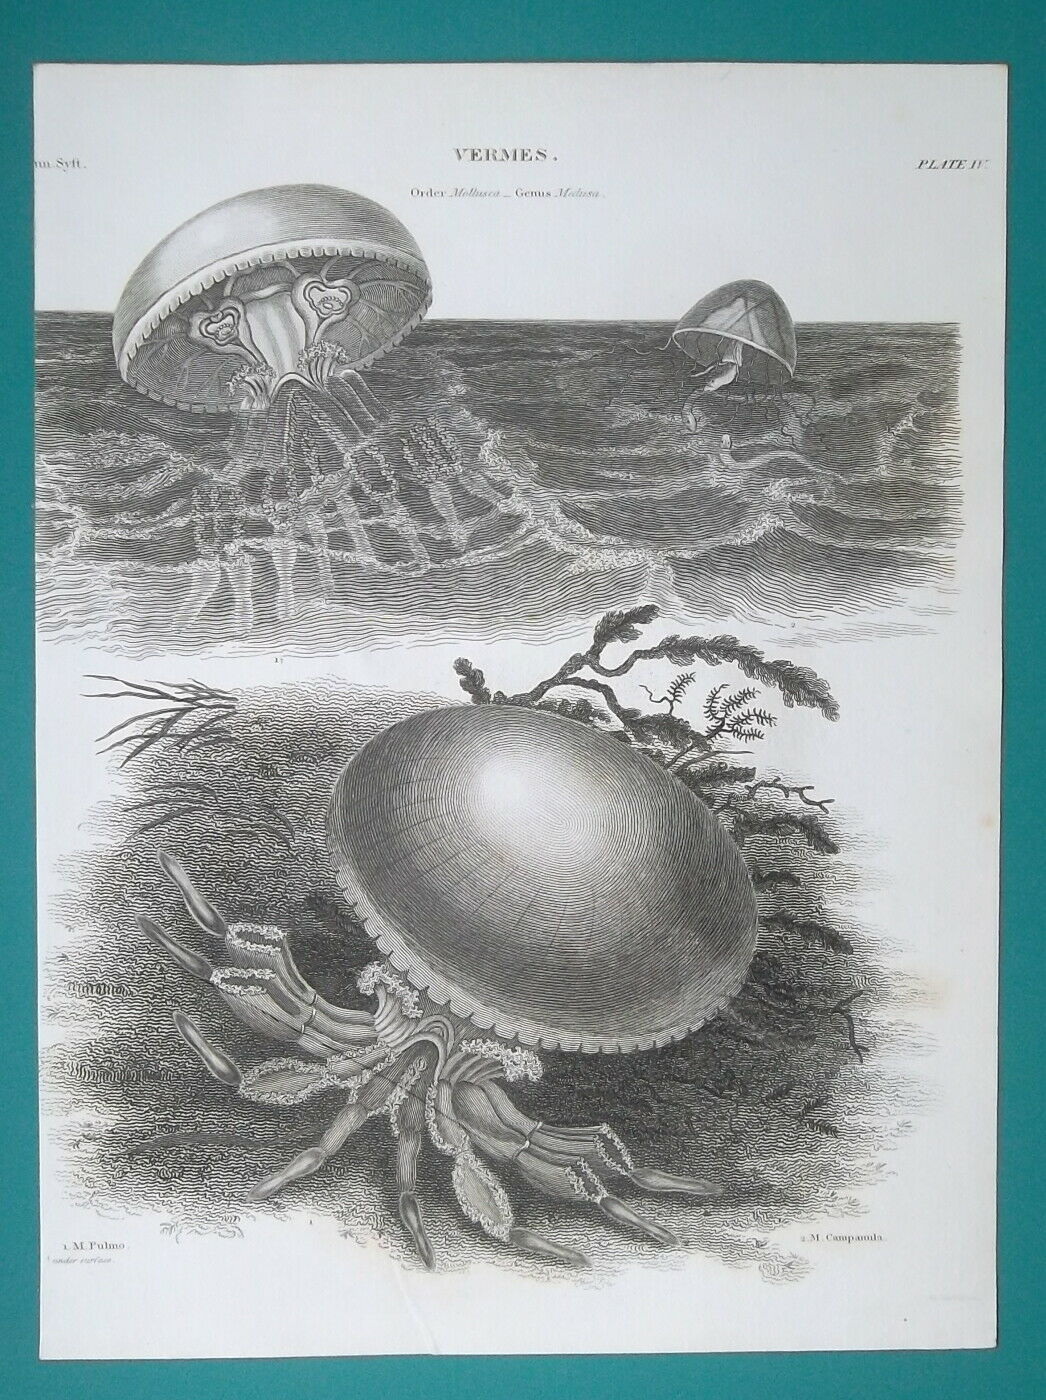 Primary image for MEDUSAS Vermes Order Mollusca - 1820 A. REES Antique Print